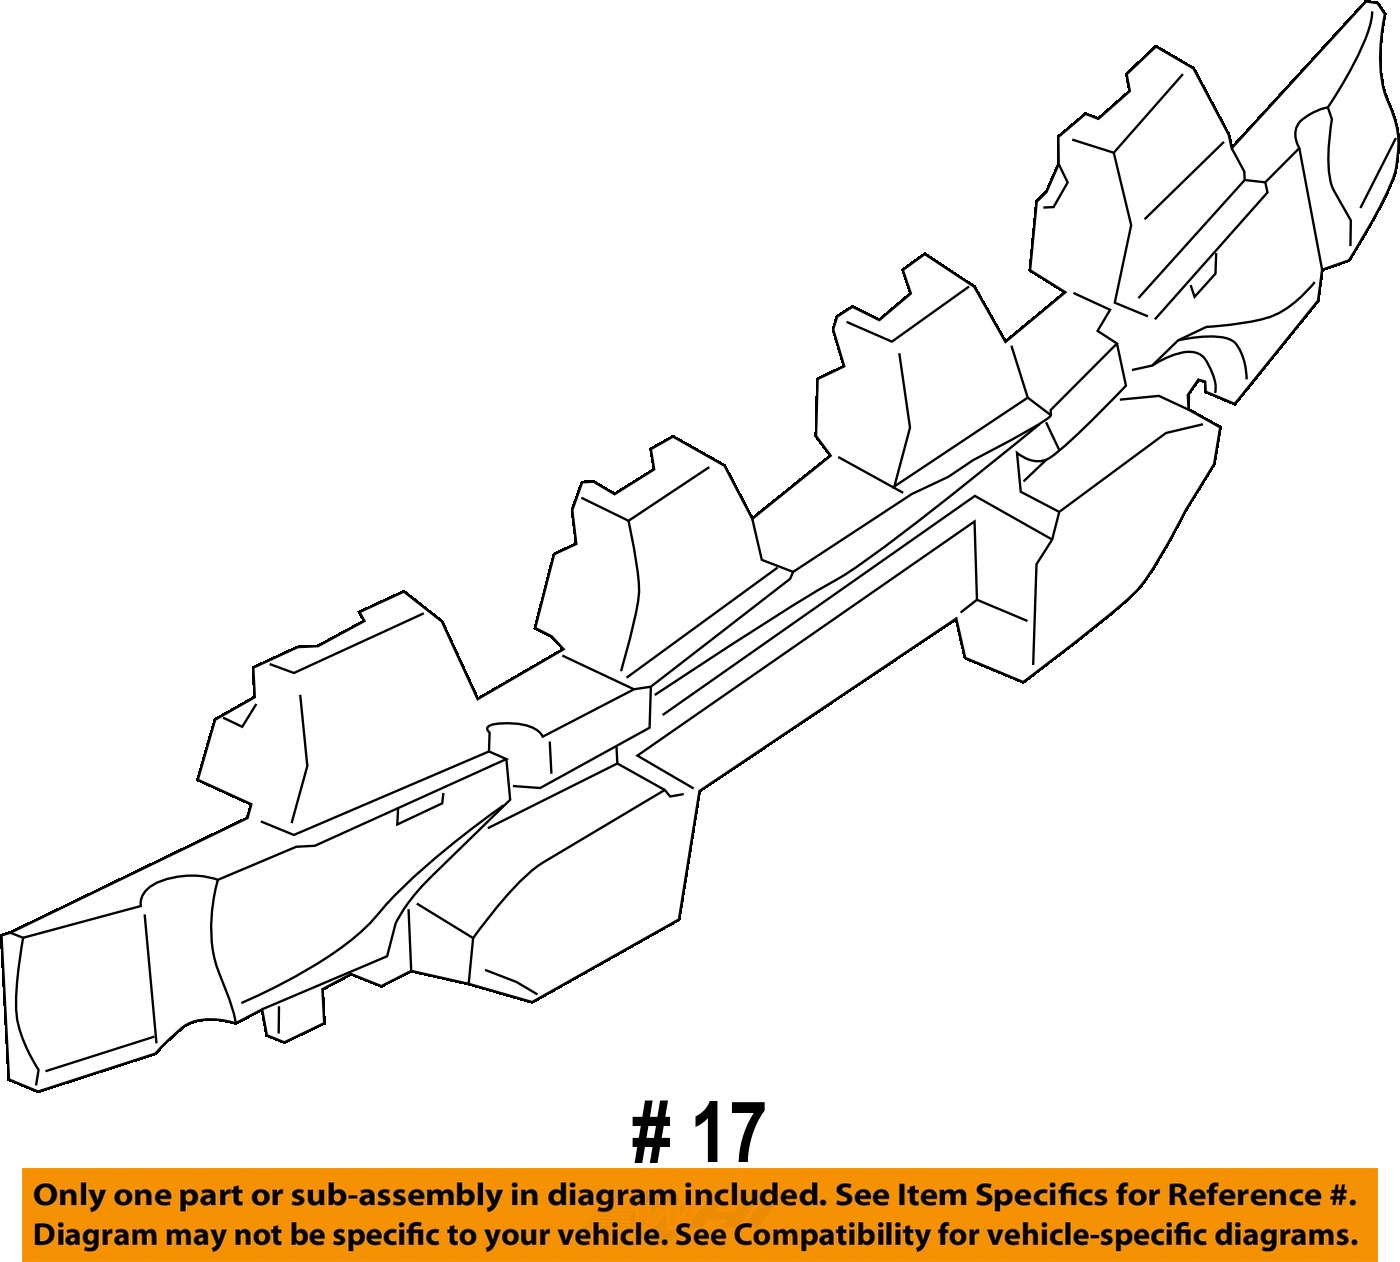 Layer_17 2010 ford taurus colors,taurus free download printable coloring pages,2005 Ford Taurus Fuse Box Diagrams Fixya